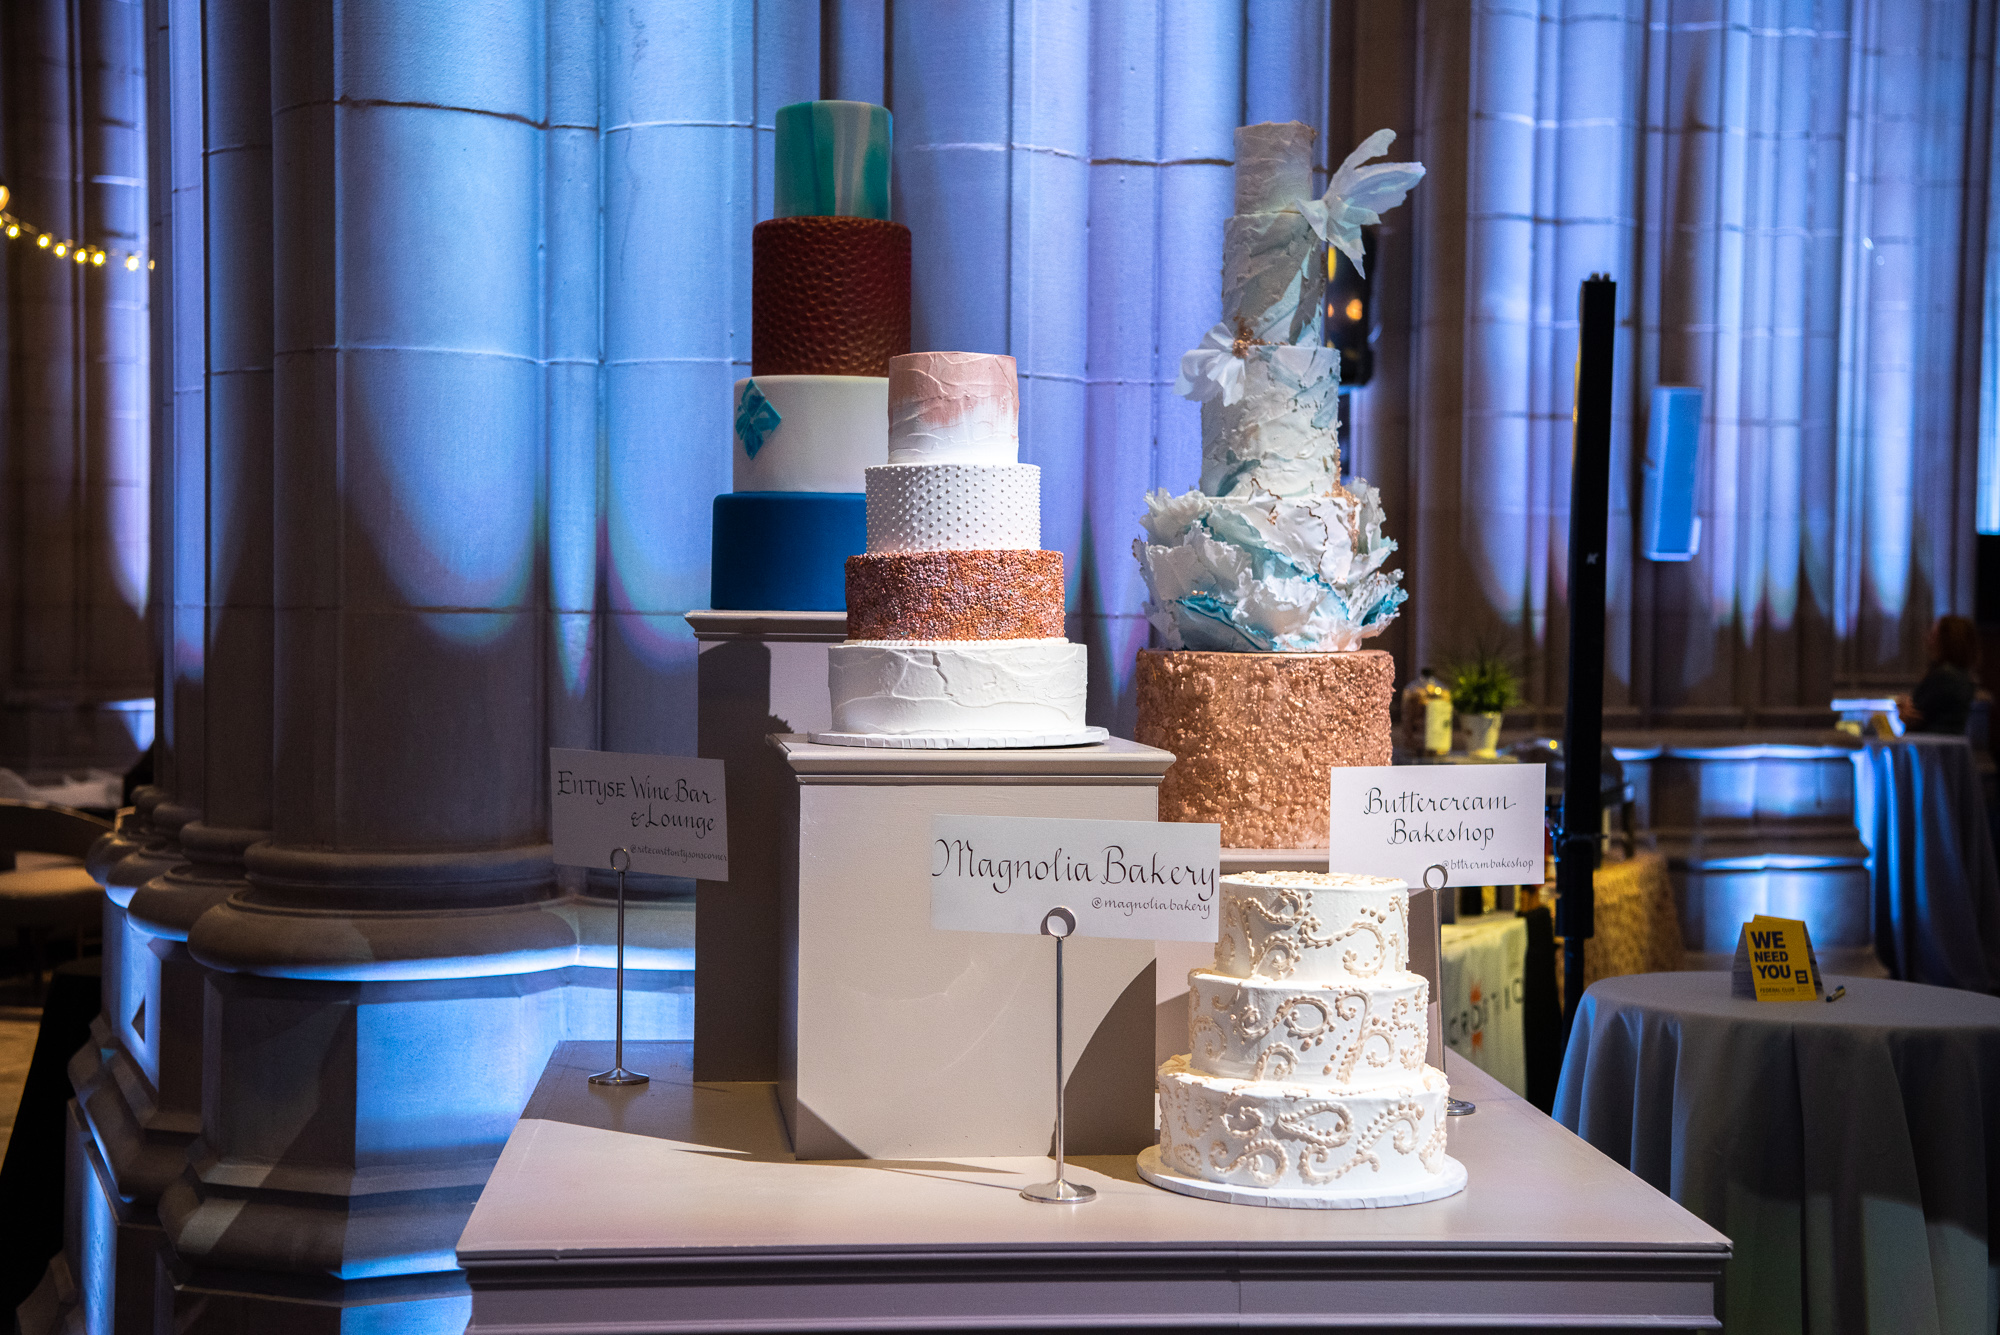 More wedding cakes from Entyse Wine Bar & Lounge, Magnolia Bakery and Buttercream Bakeshop.{ } (Image:{ }Jeff Martin for Human Rights Campaign)